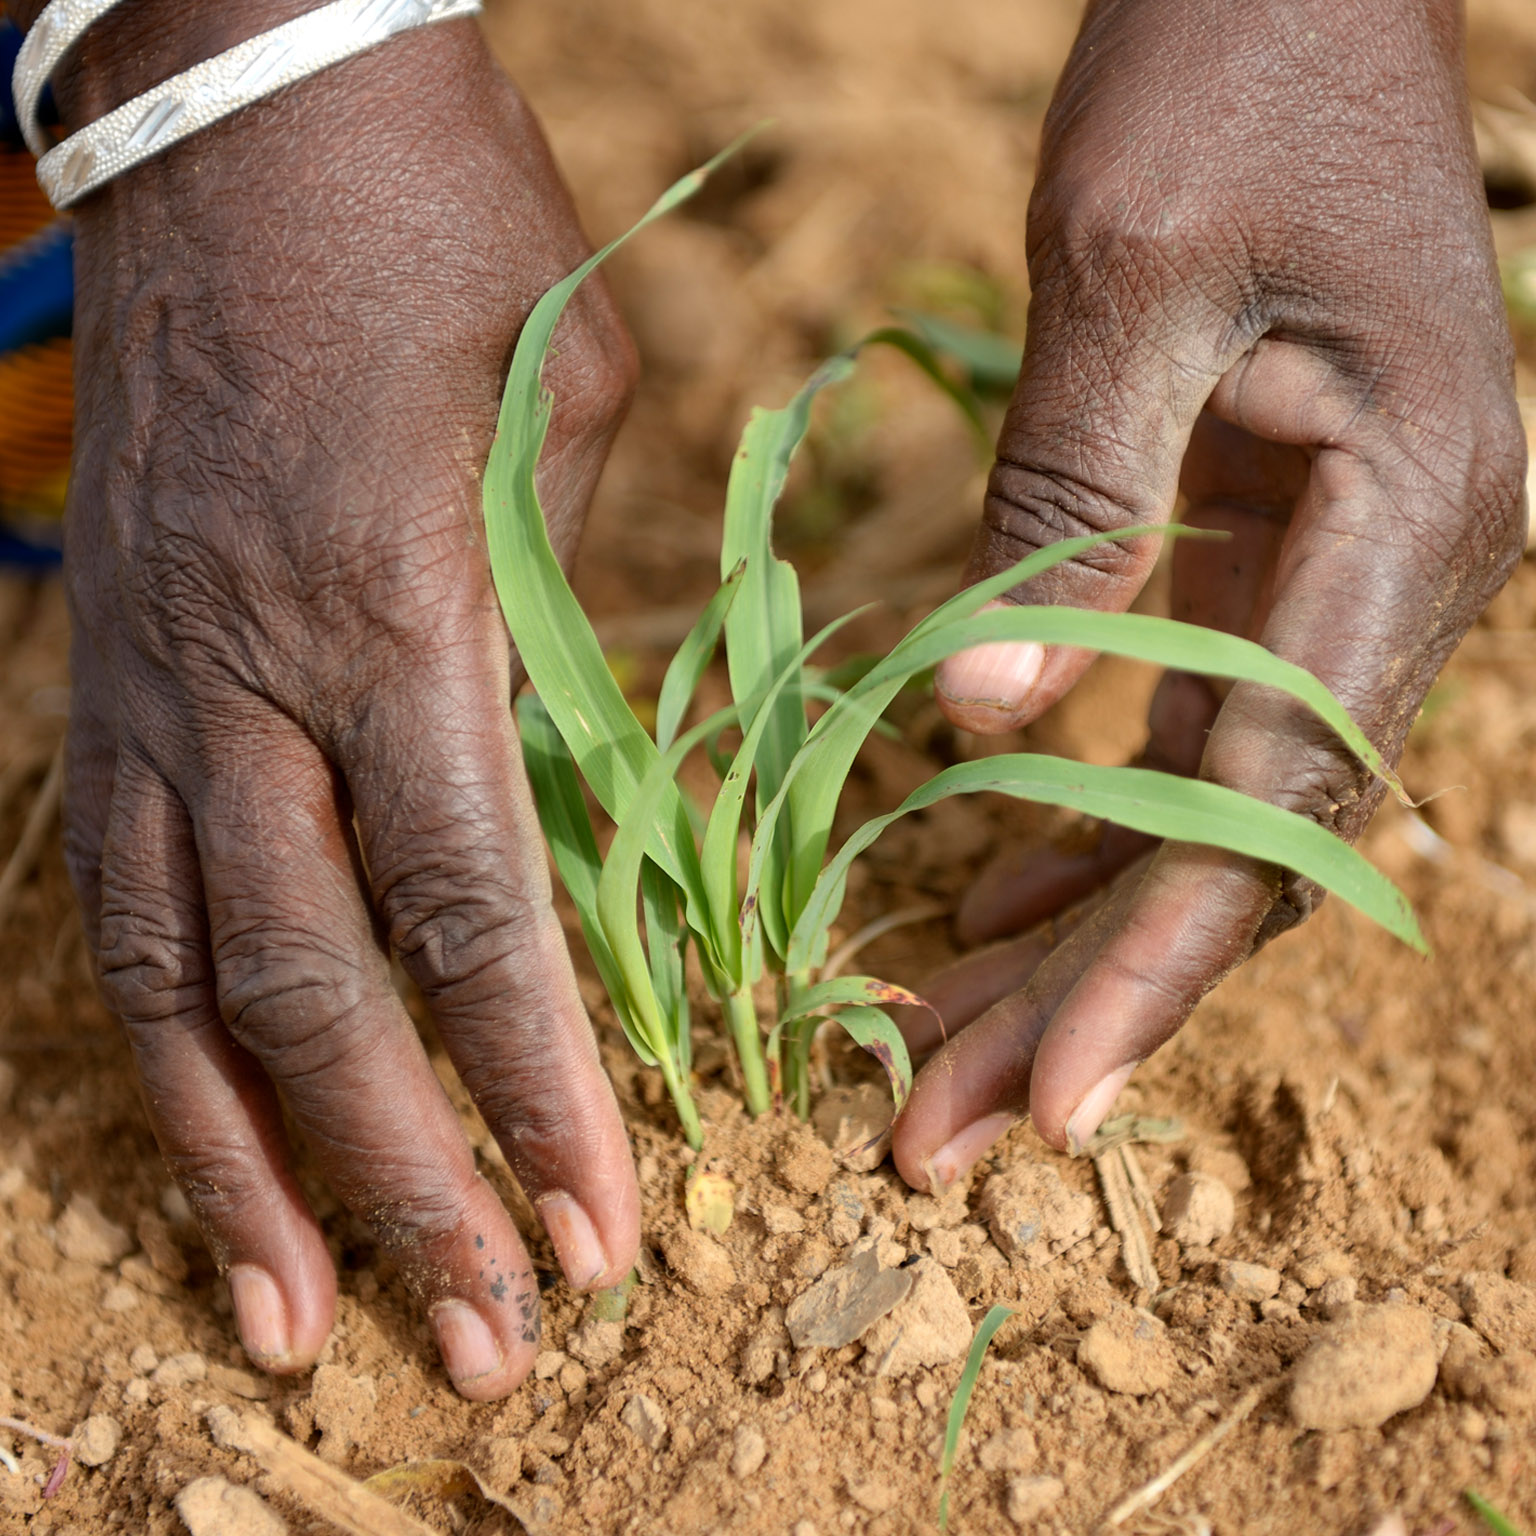 Africa commits to doubling agricultural productivity as development partners pledge Sh1.8 trillion to increase food security